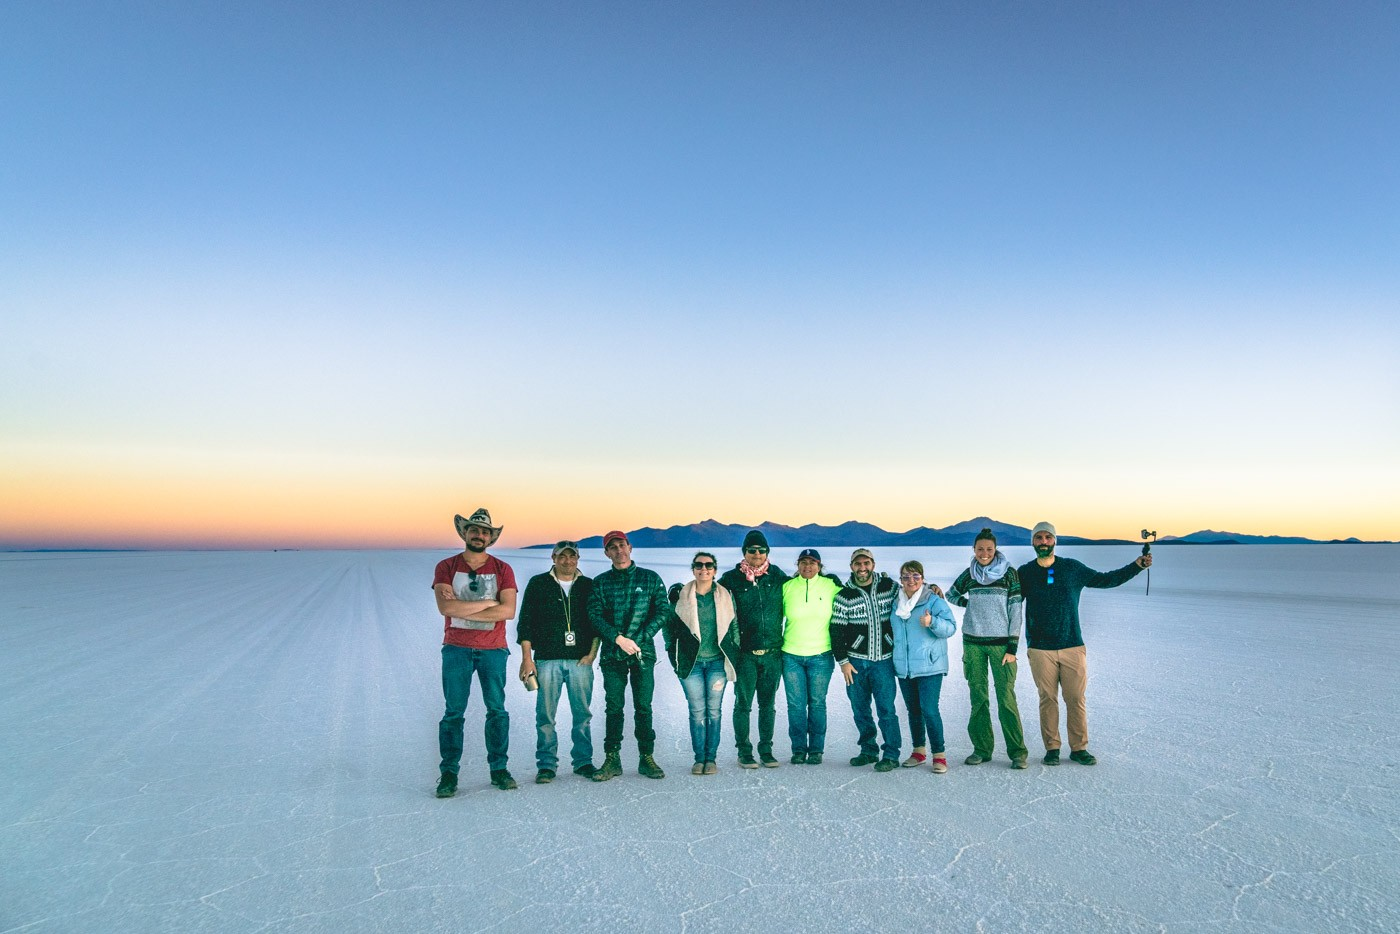 Our group at the Salt Flat at sunset